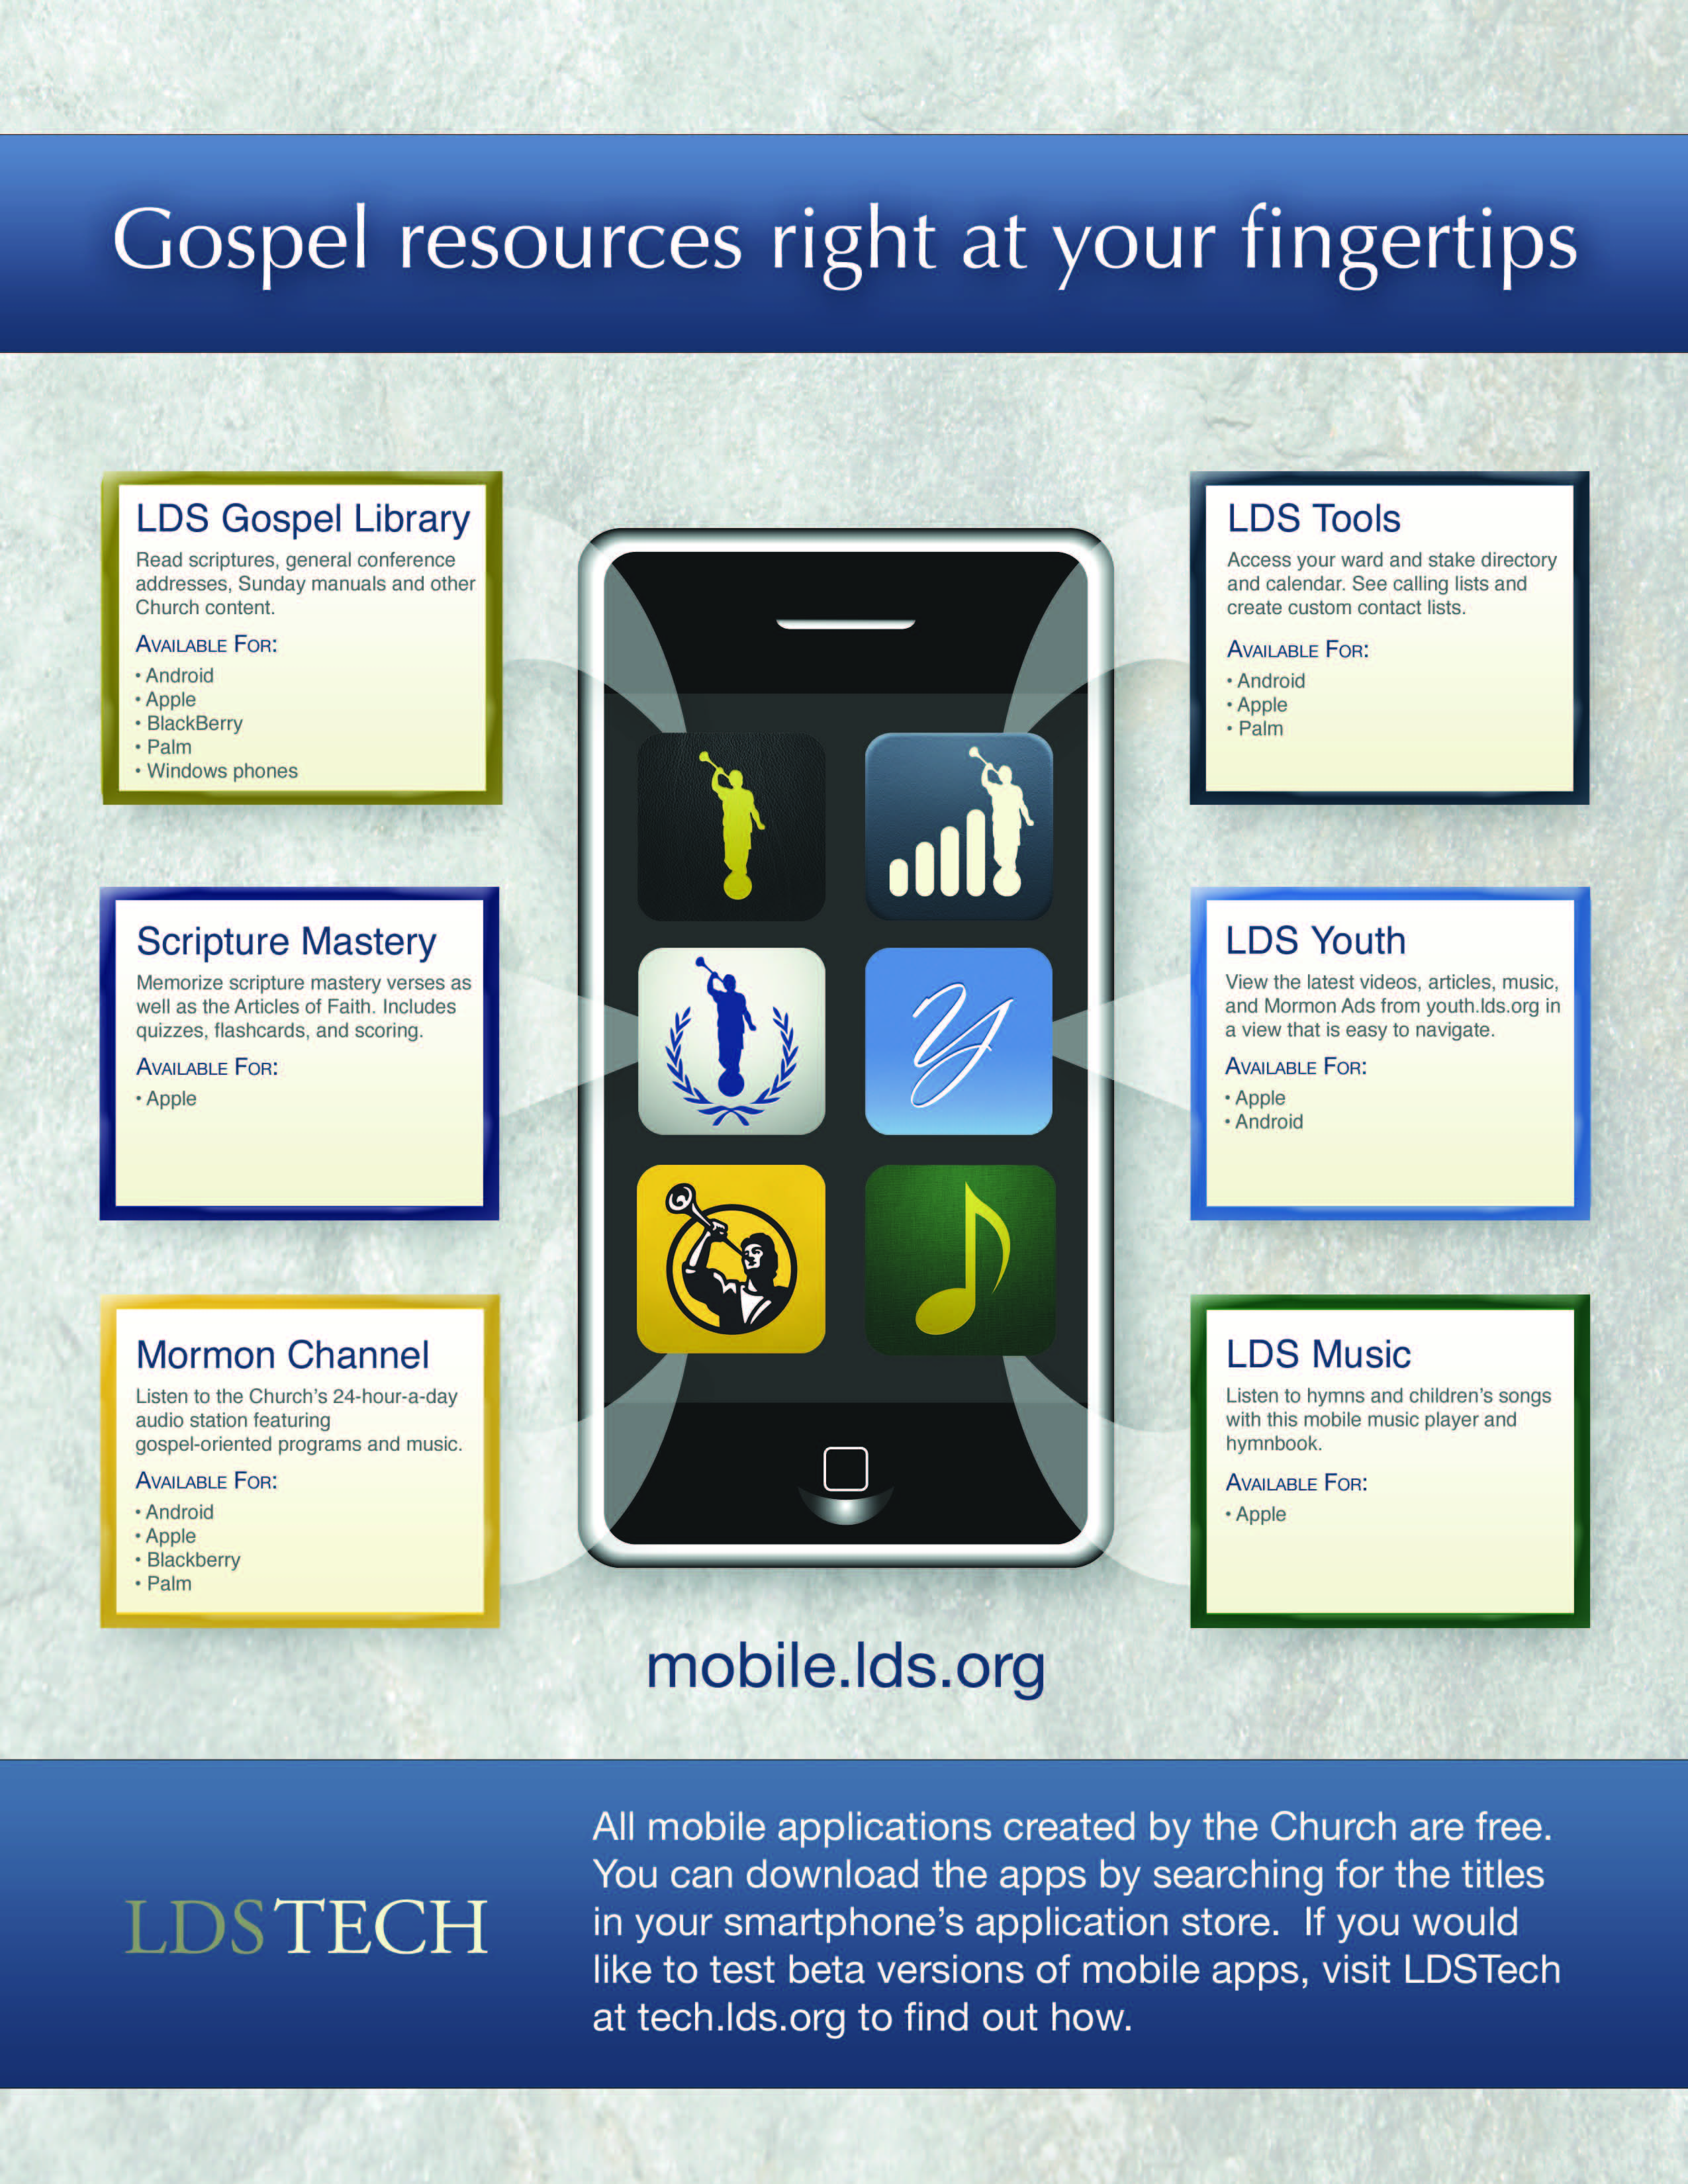 LDS Mobile Apps Infographic | LDS365: Resources from the